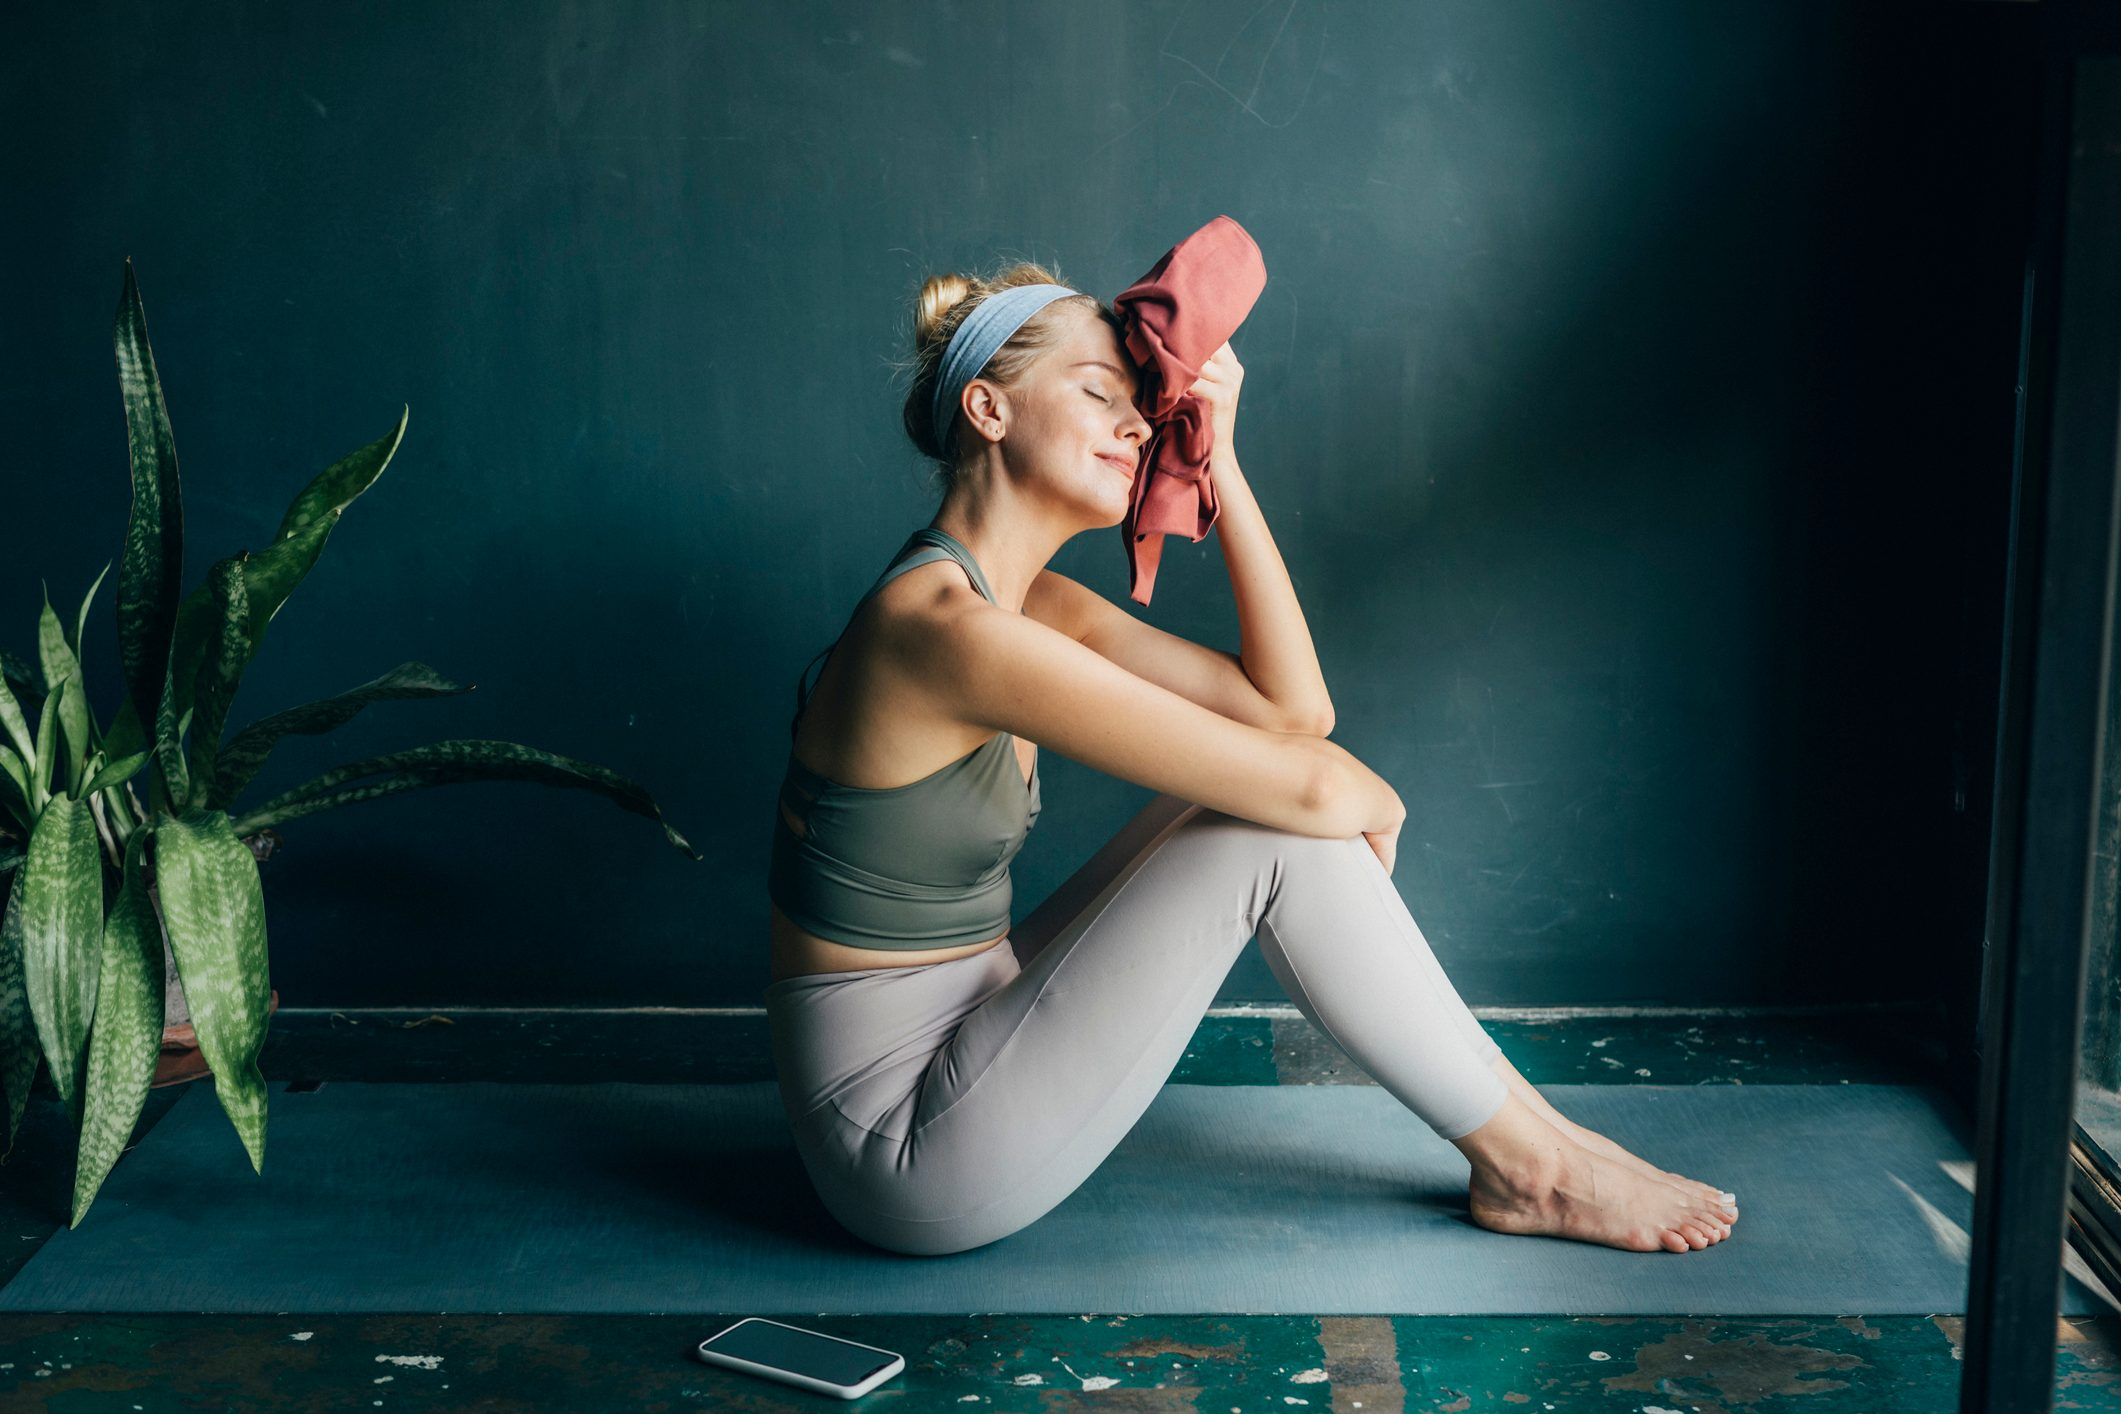 young woman tired from workout sitting on yoga mat